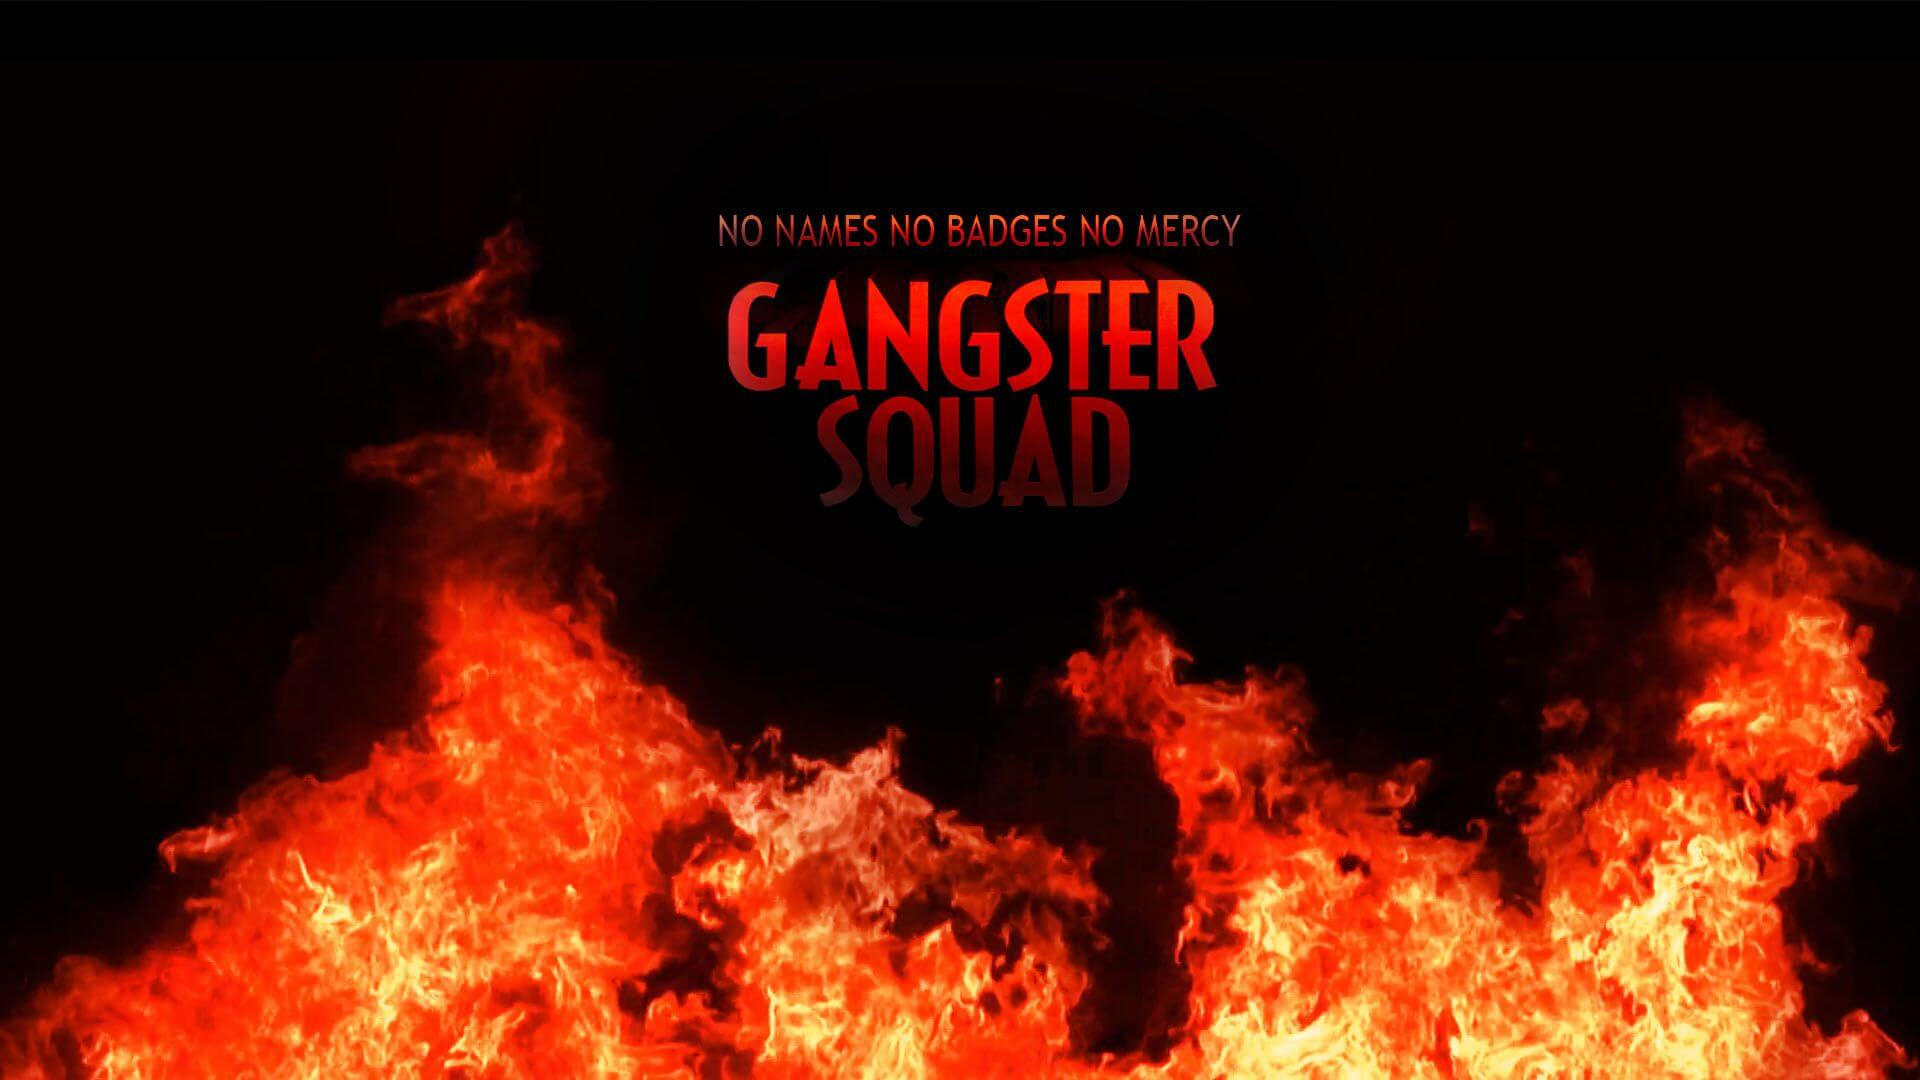 Unduh 93+ Background Hd Gangster Terbaik